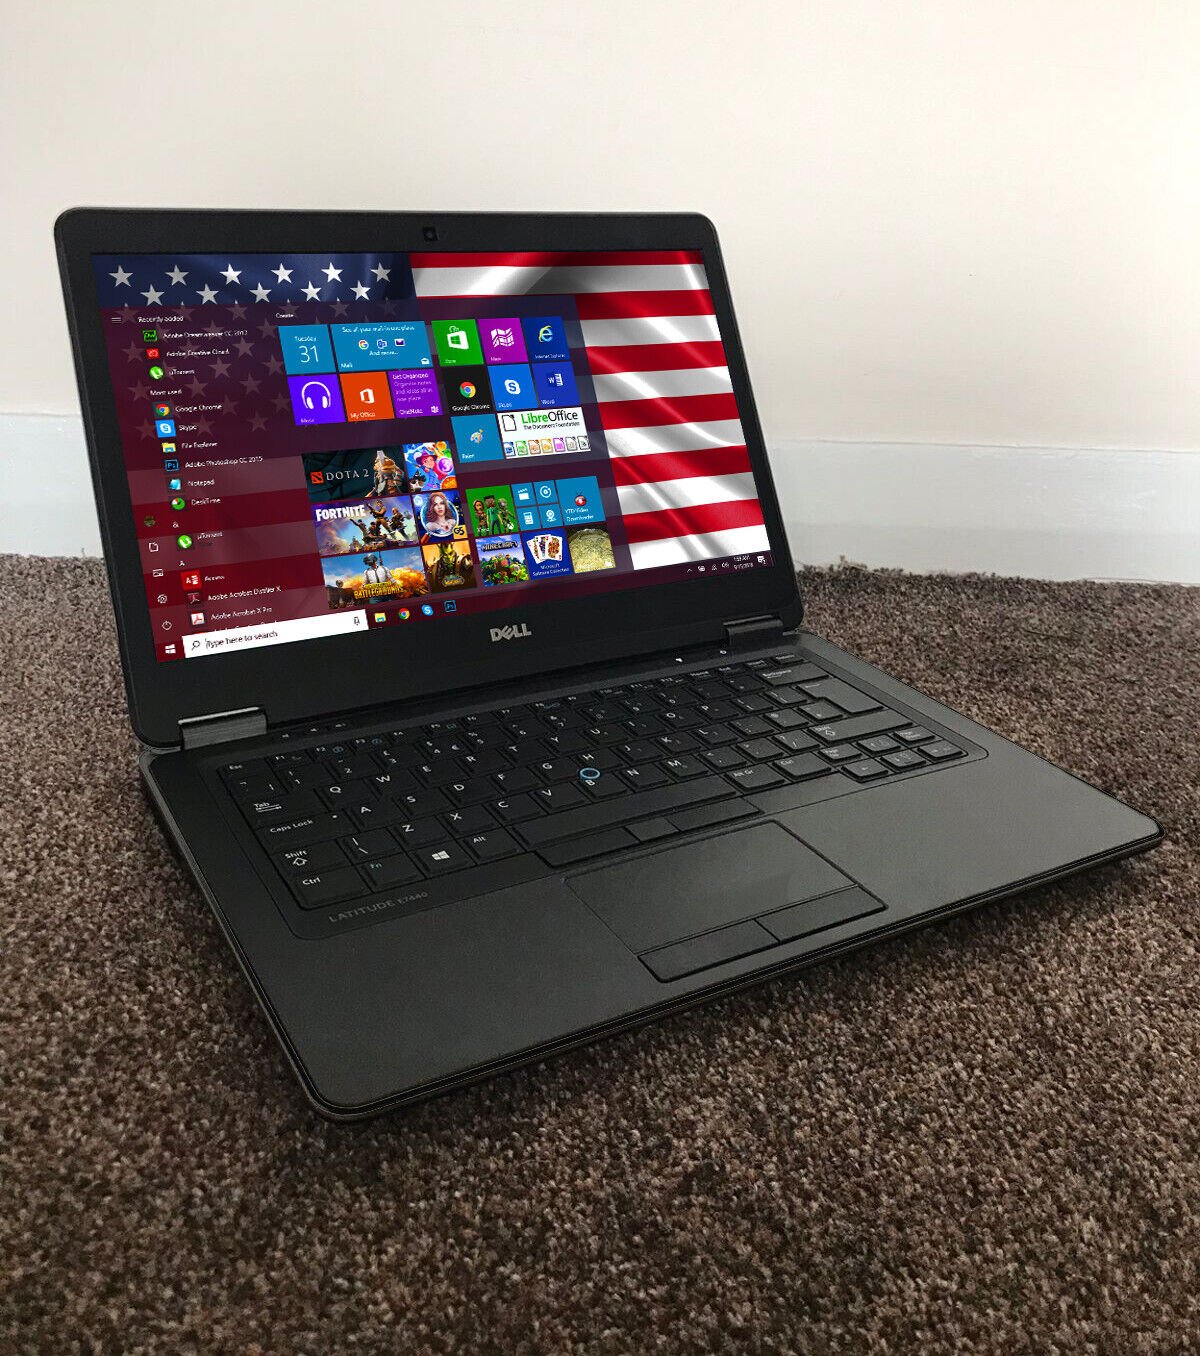 Laptop Windows - FAST LAPTOP FOR GAMES DELL CORE i7 WINDOWS 10 TOUCHSCREEN 16GB 1TB WIN COMPUTER